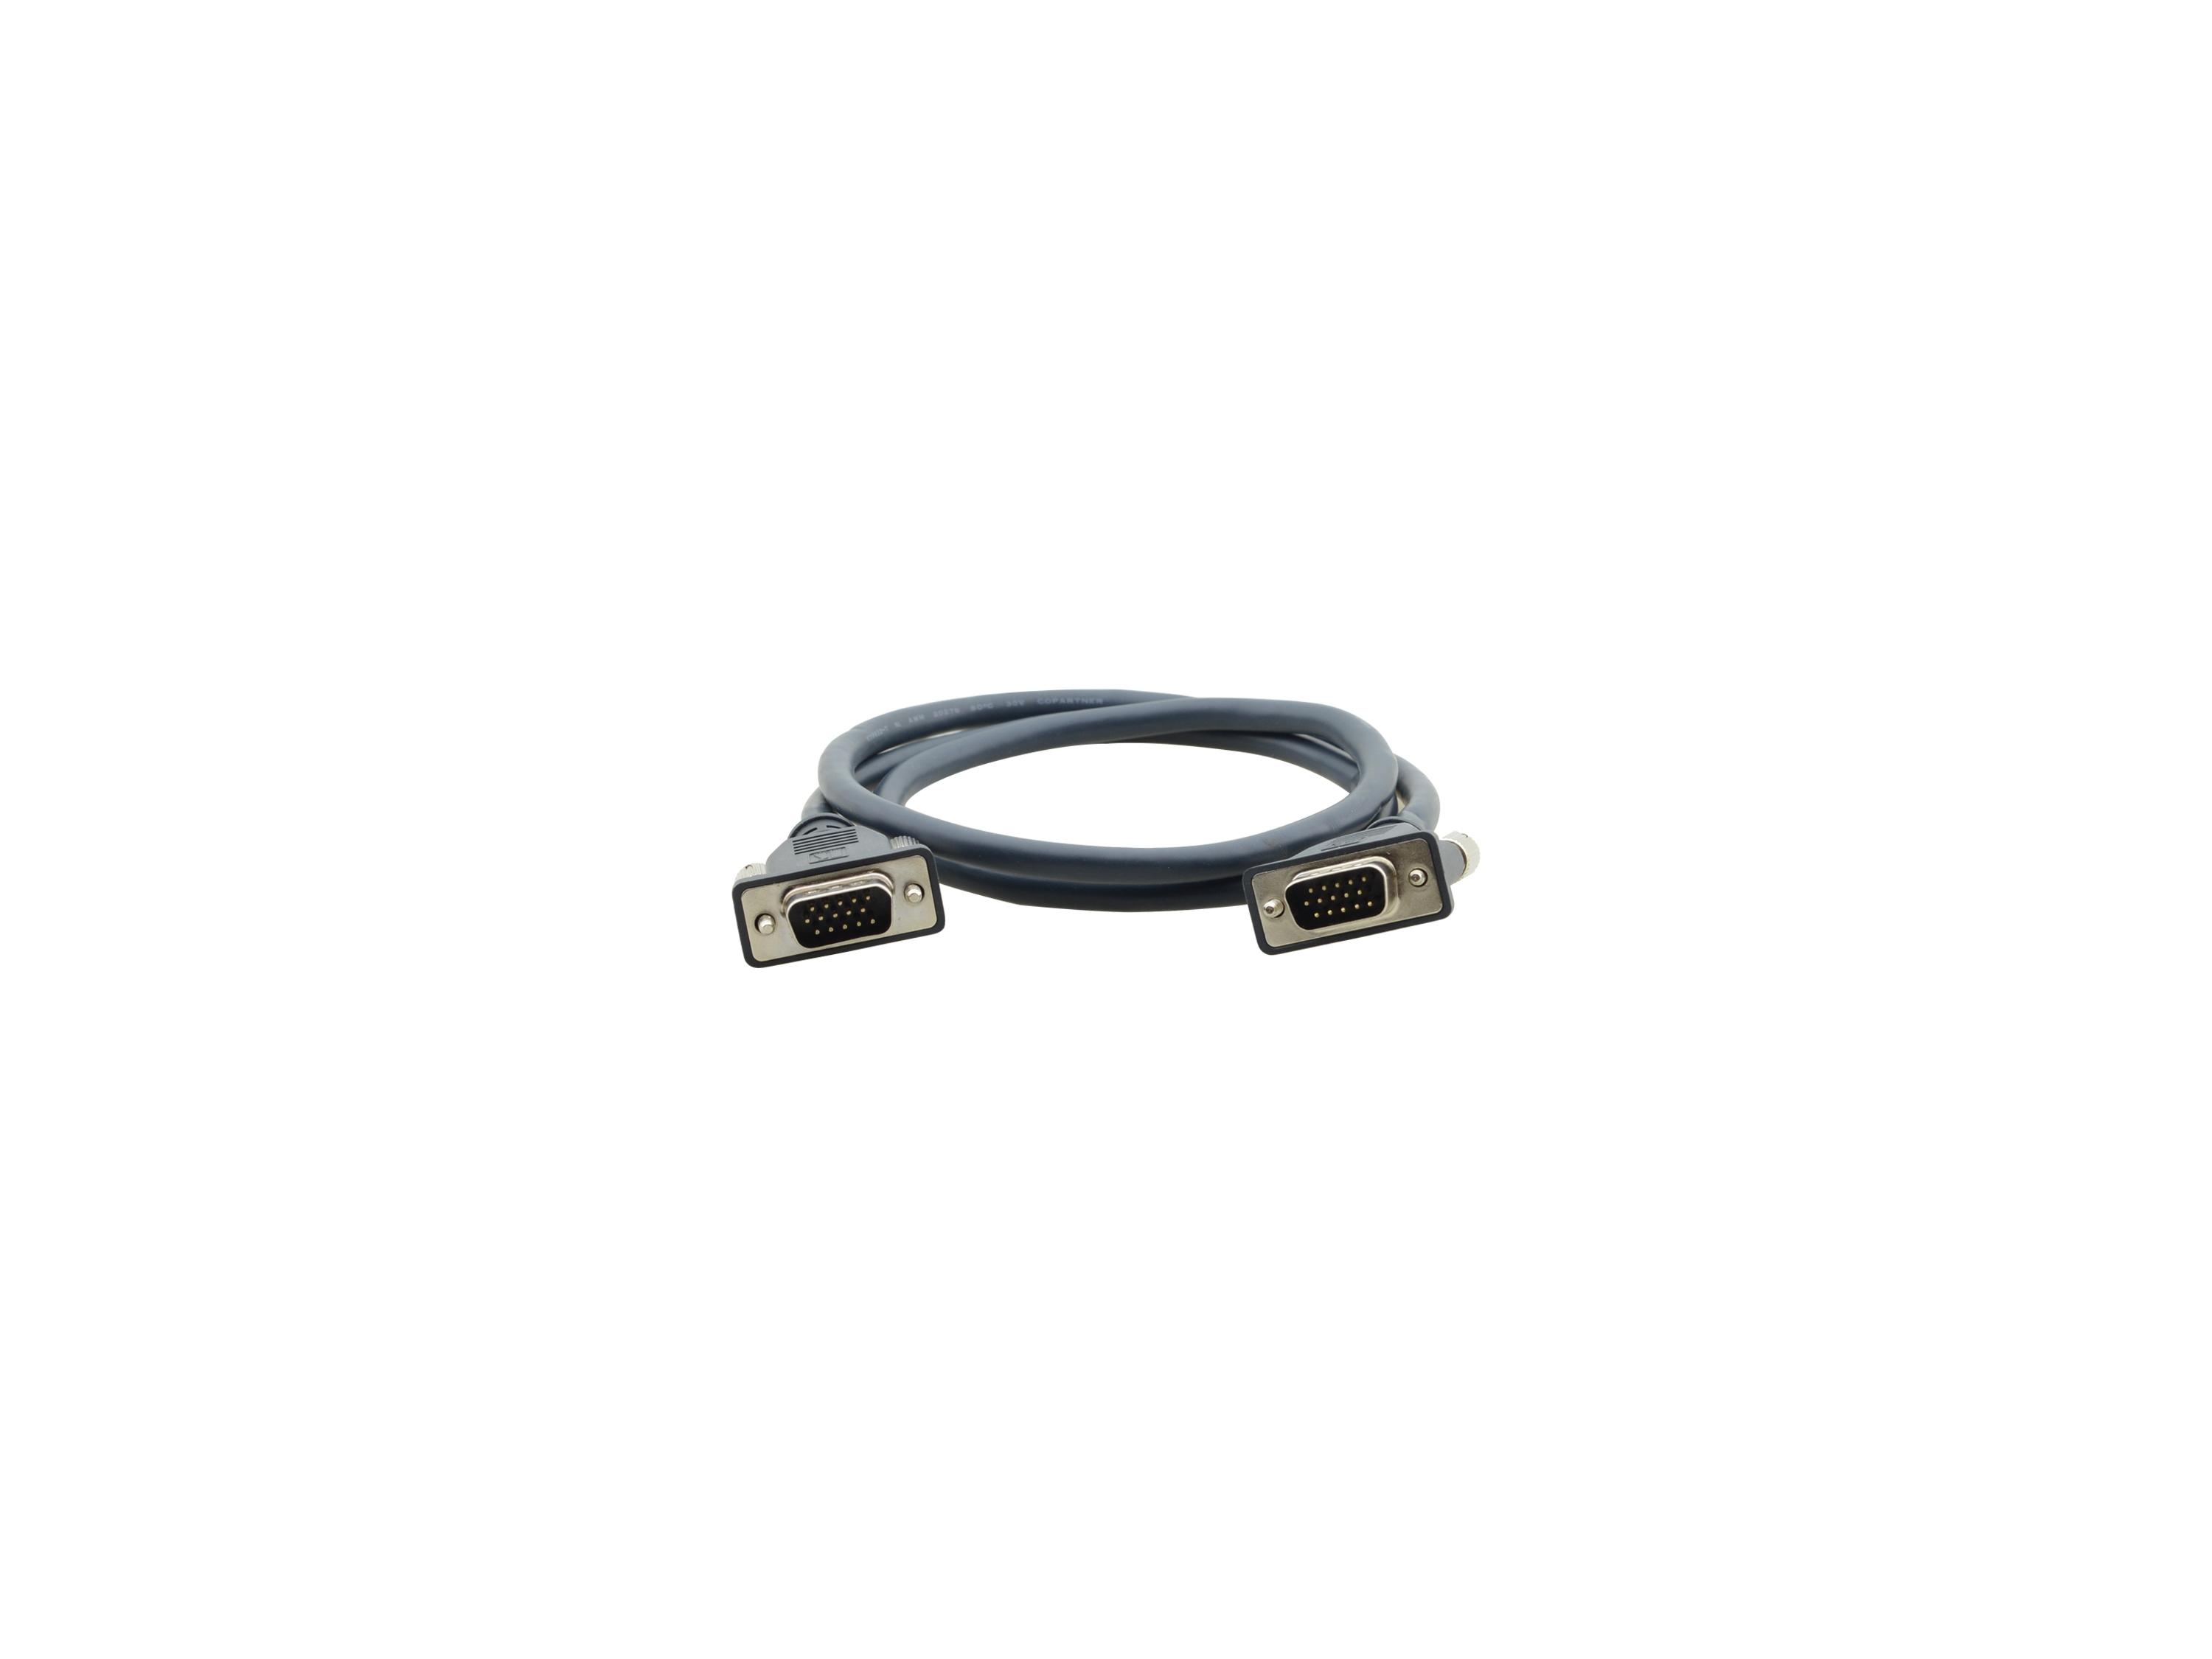 C-MGM/MGM-35 15-Pin HD (M) to 15-Pin (M) Micro VGA Cable - 35ft by Kramer